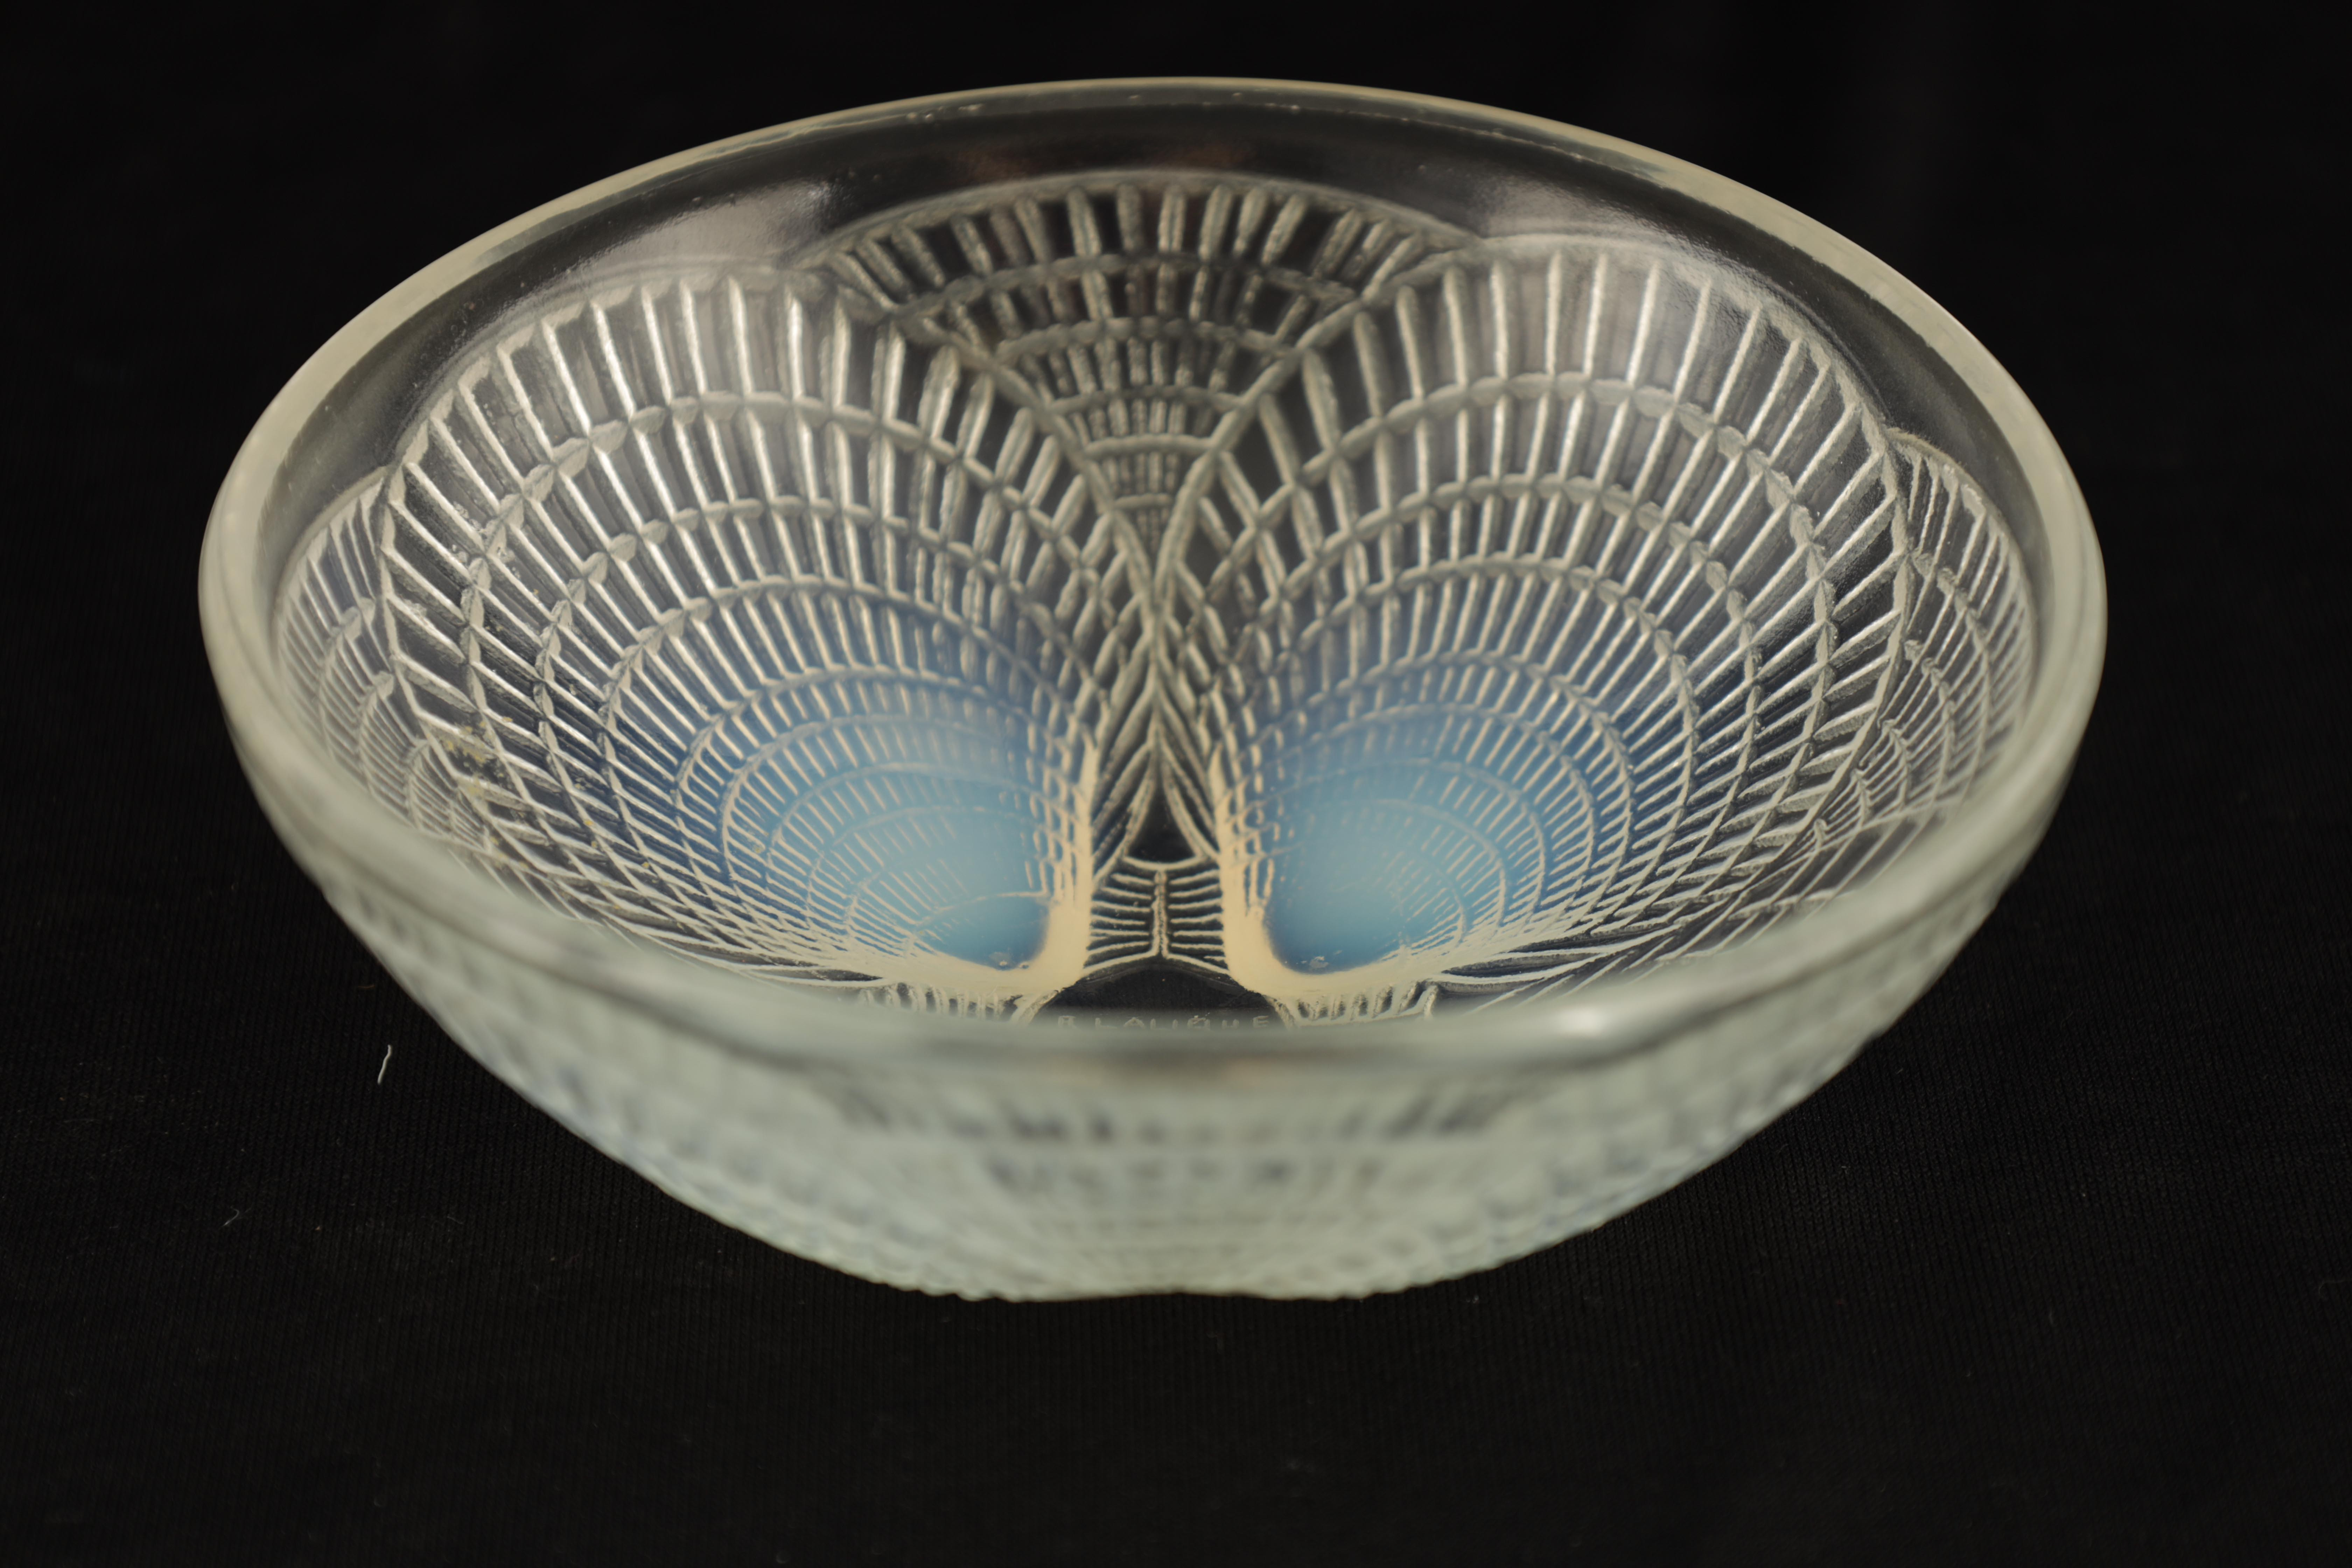 """AN R LALIQUE FRANCE """"COQUILLES"""" CLEAR AND OPALESCENT SHALLOW GLASS DISH 13cm diameter - wheel - Image 2 of 5"""